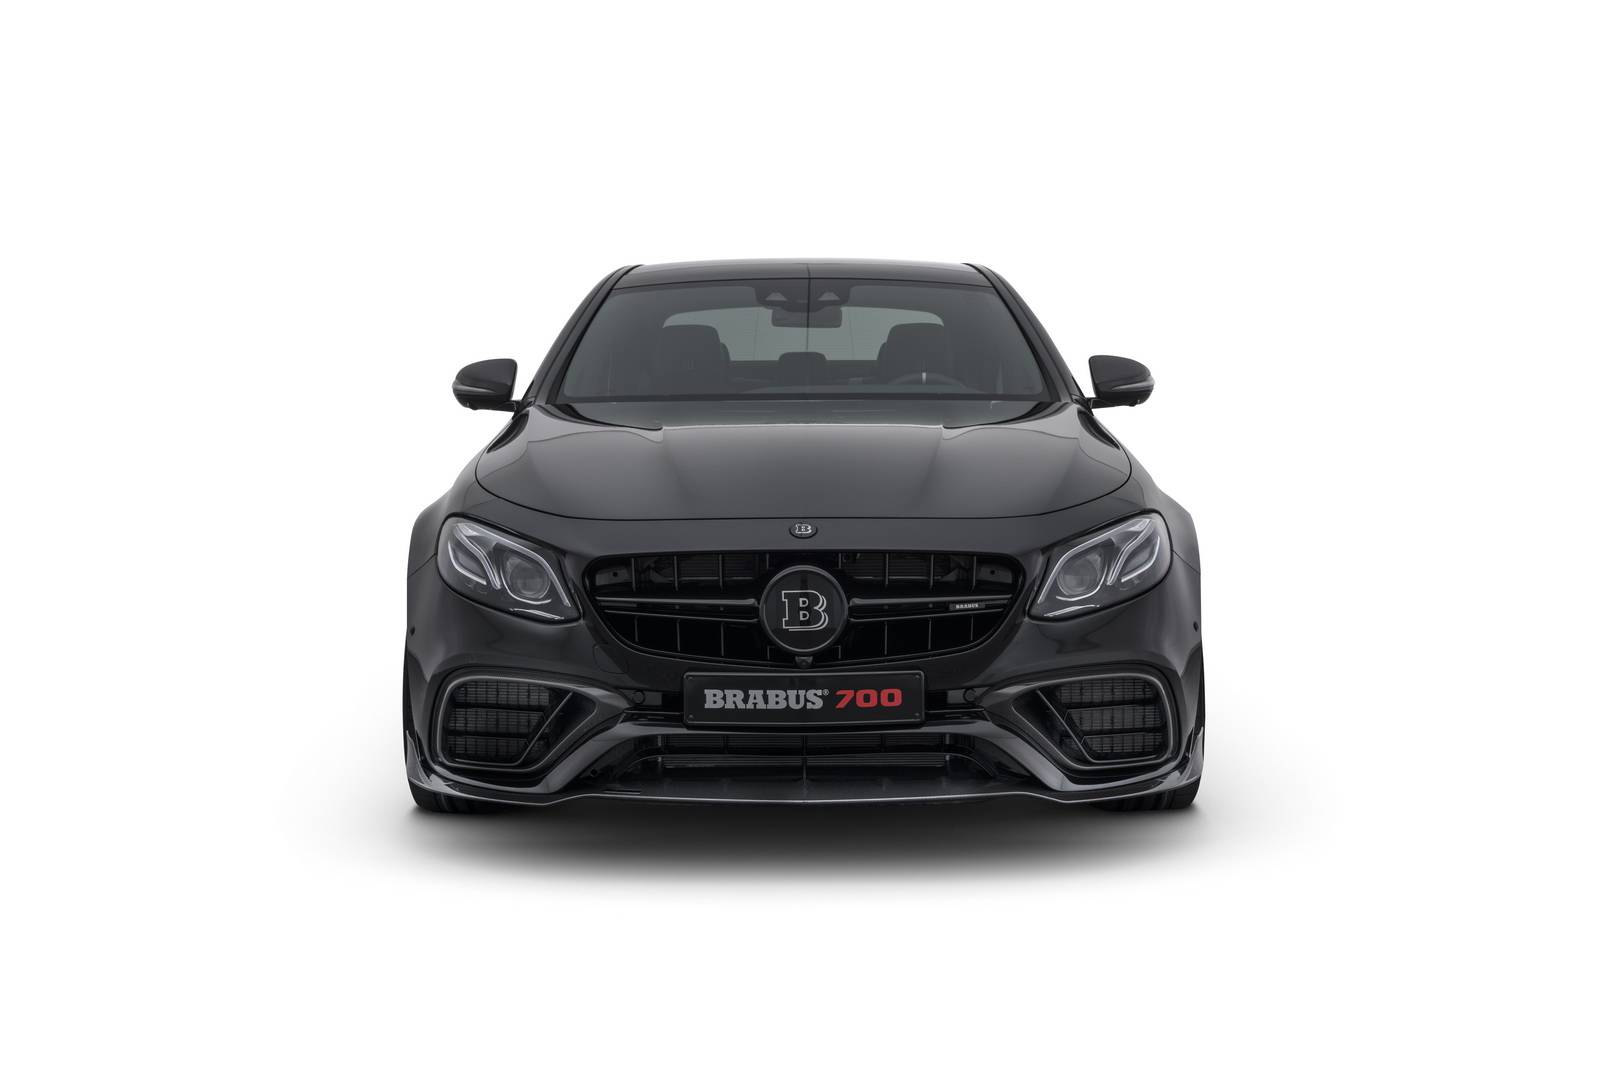 official brabus 700 mercedes amg e63 gtspirit. Black Bedroom Furniture Sets. Home Design Ideas